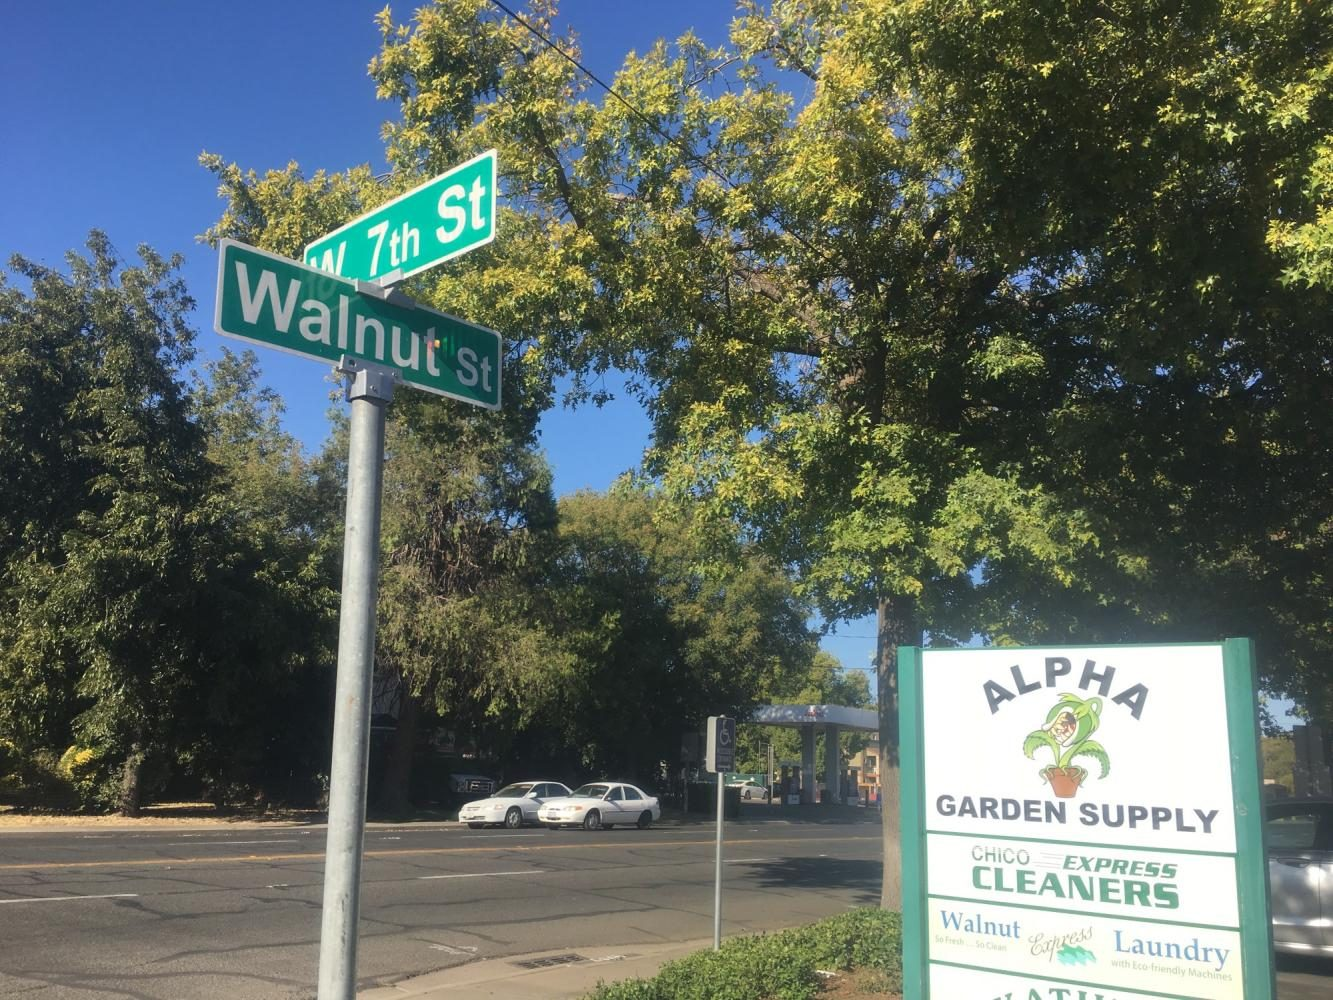 A+woman+was+beaten+and+robbed+near+Highway+32+on+Monday+near+7th+and+Walnut+Street.+Photo+credit%3A+Natalie+Hanson